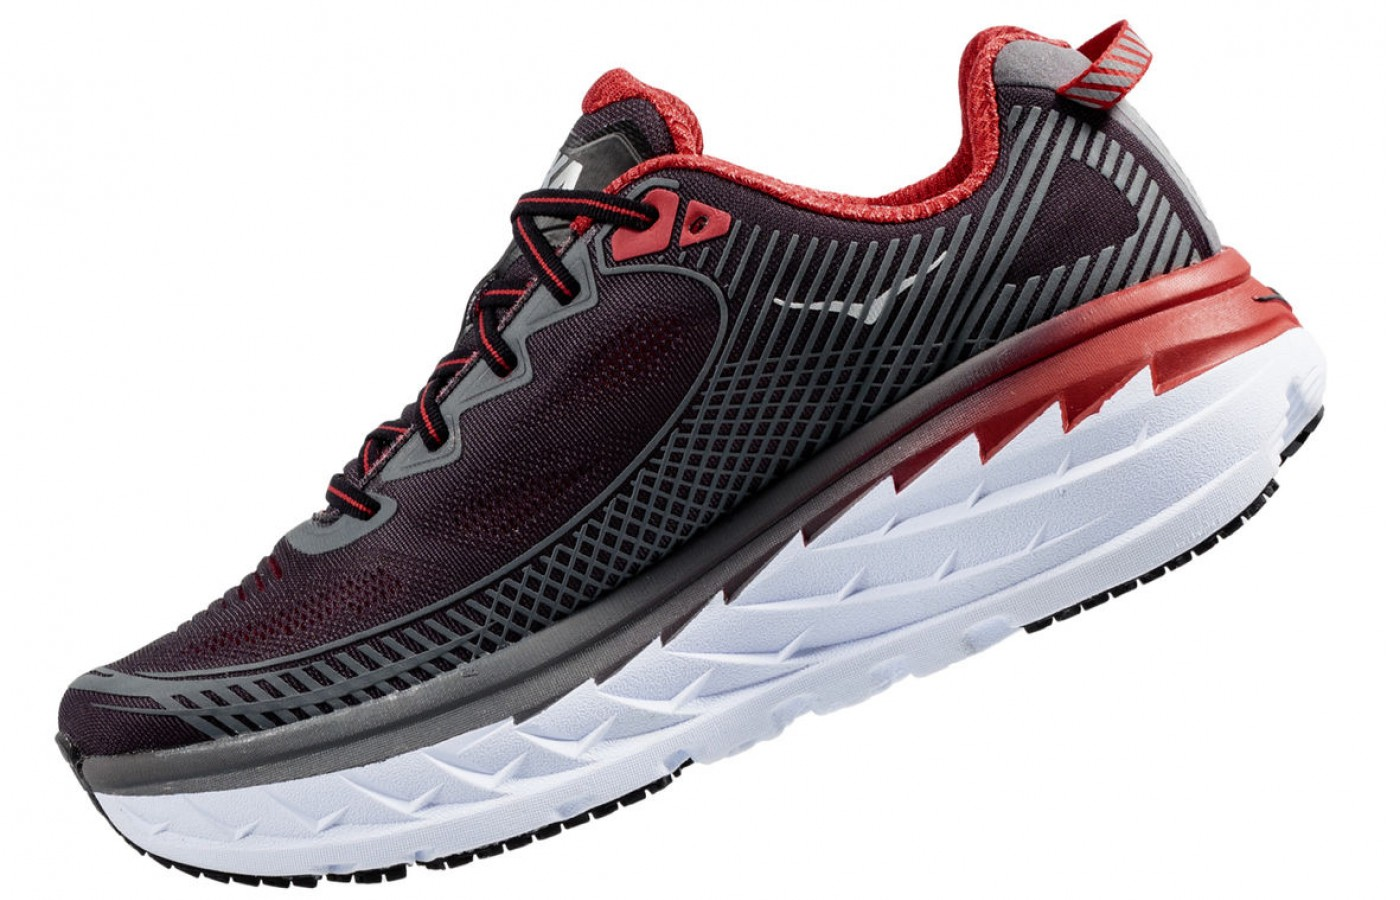 Hoka One One Bondi 5 tipped